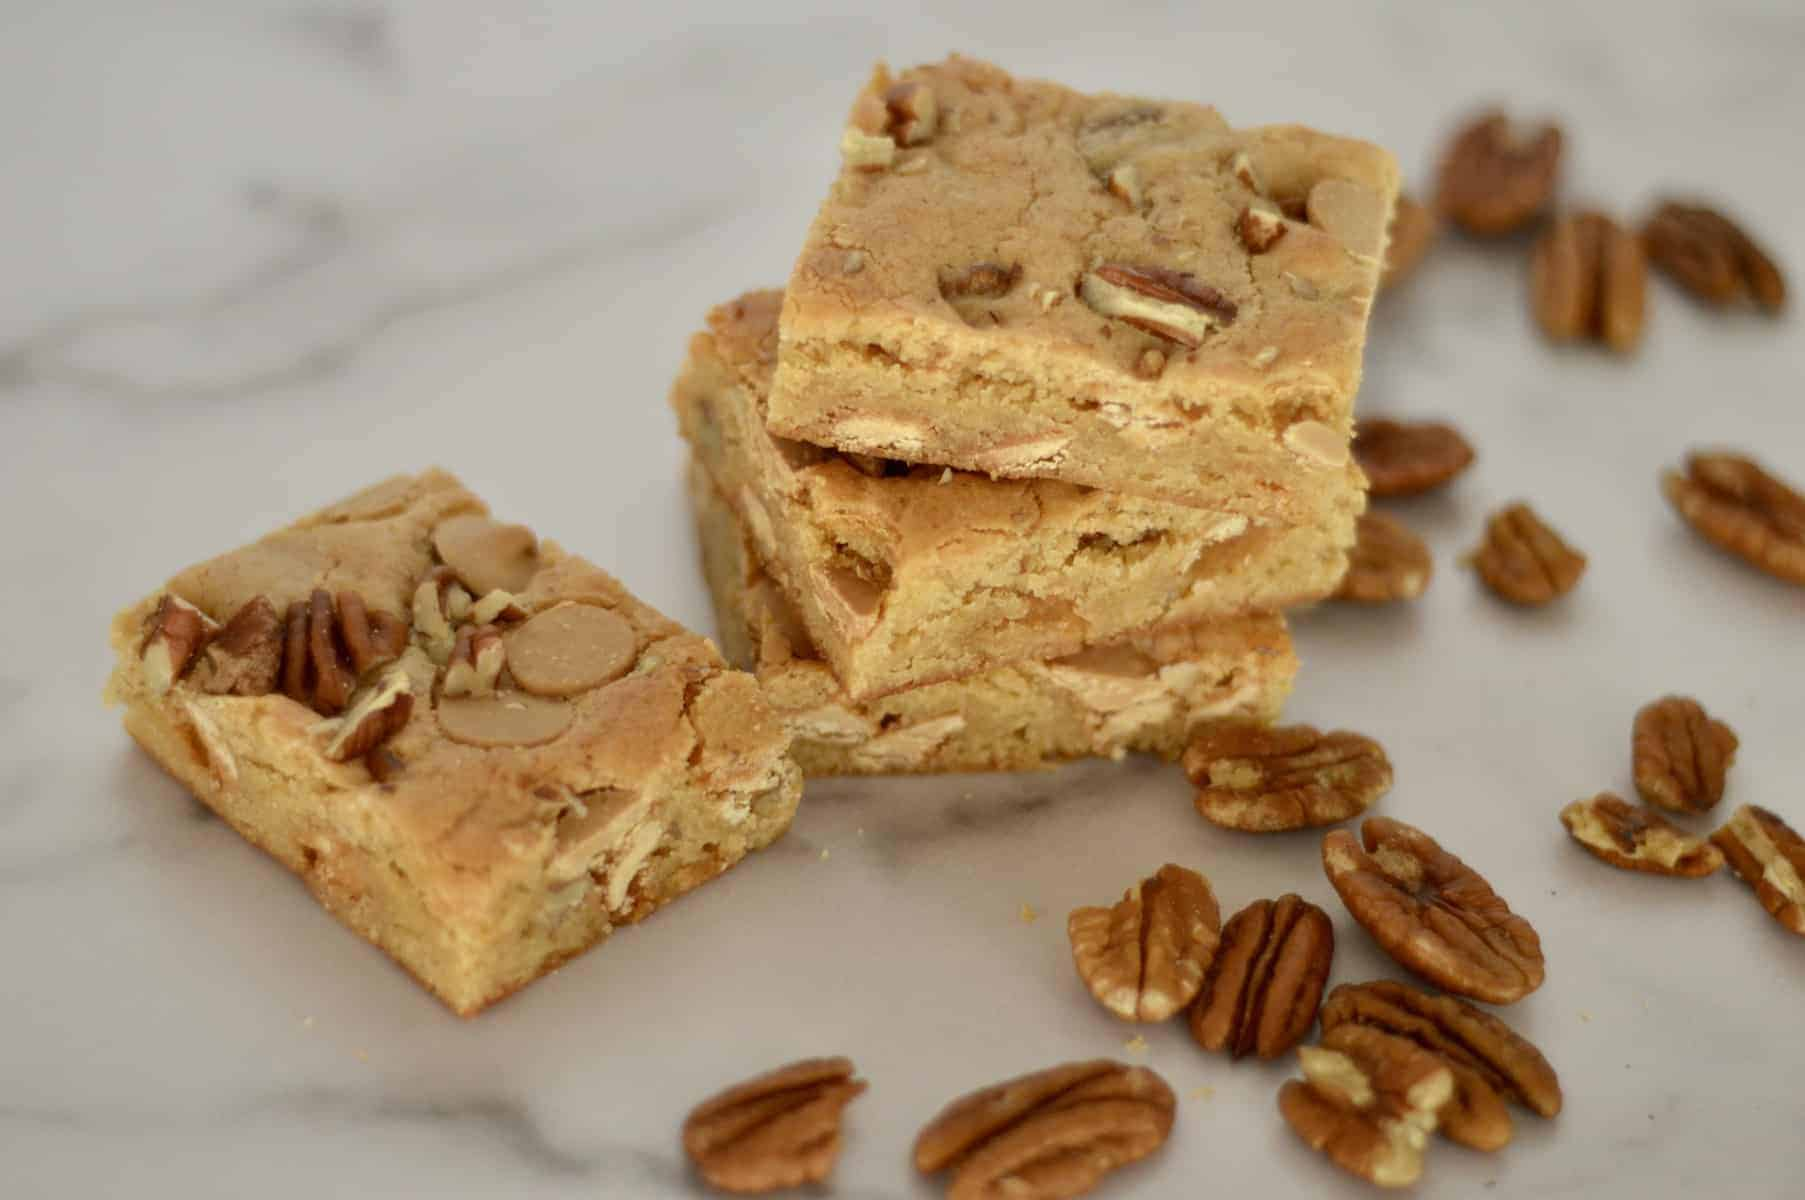 Caramel Pecan Bars stacked on a countertop